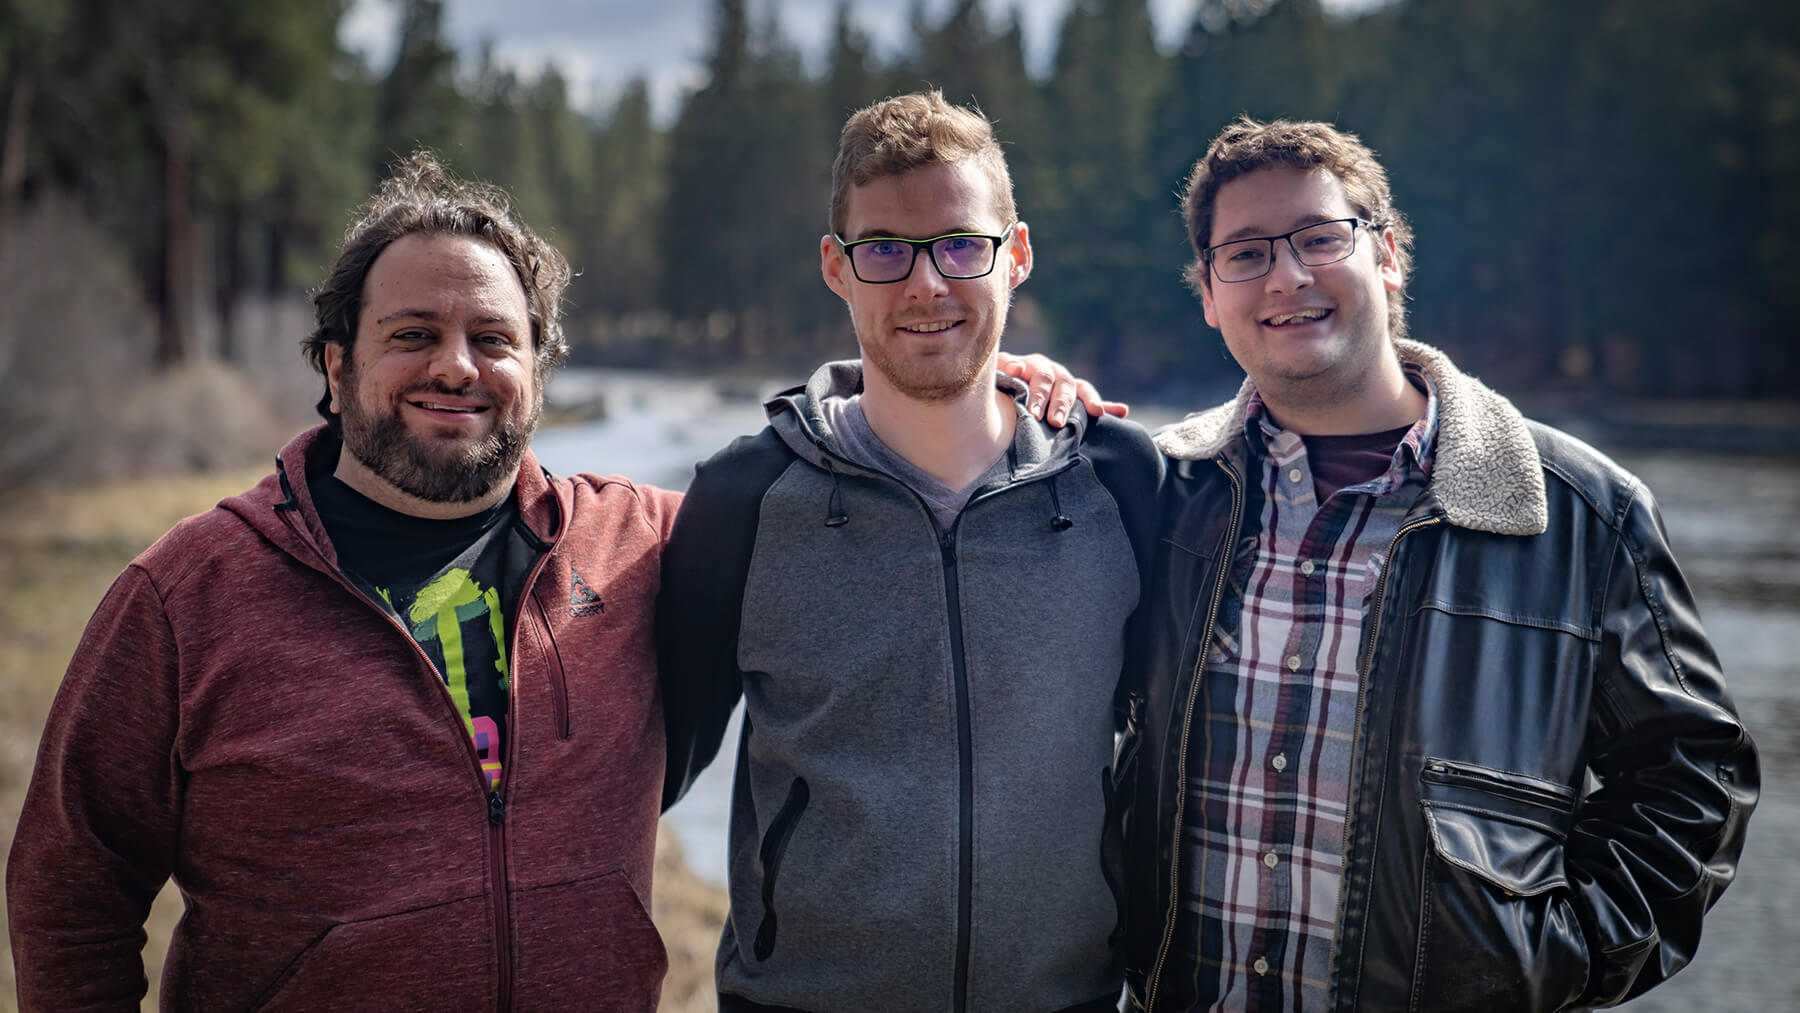 DigiPen alumni Geoffrey Hammon, Sawyer Paradise, and Jacob Fieth pose in the Bend, Oregon wilderness.